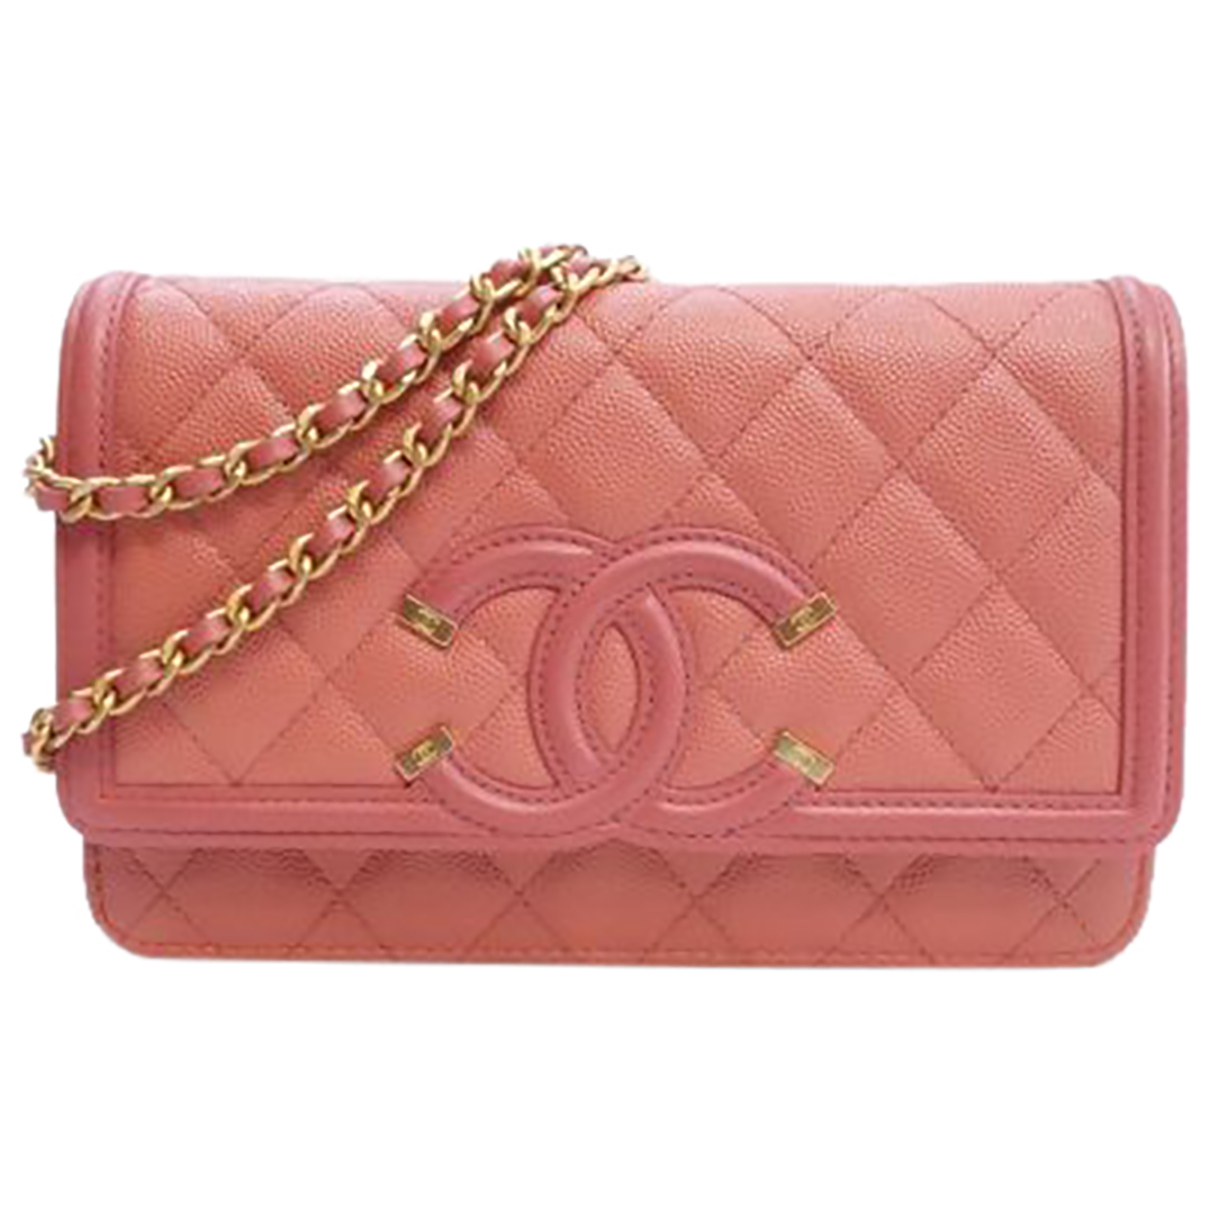 Chanel - Sac a main Wallet on Chain pour femme en cuir - rose